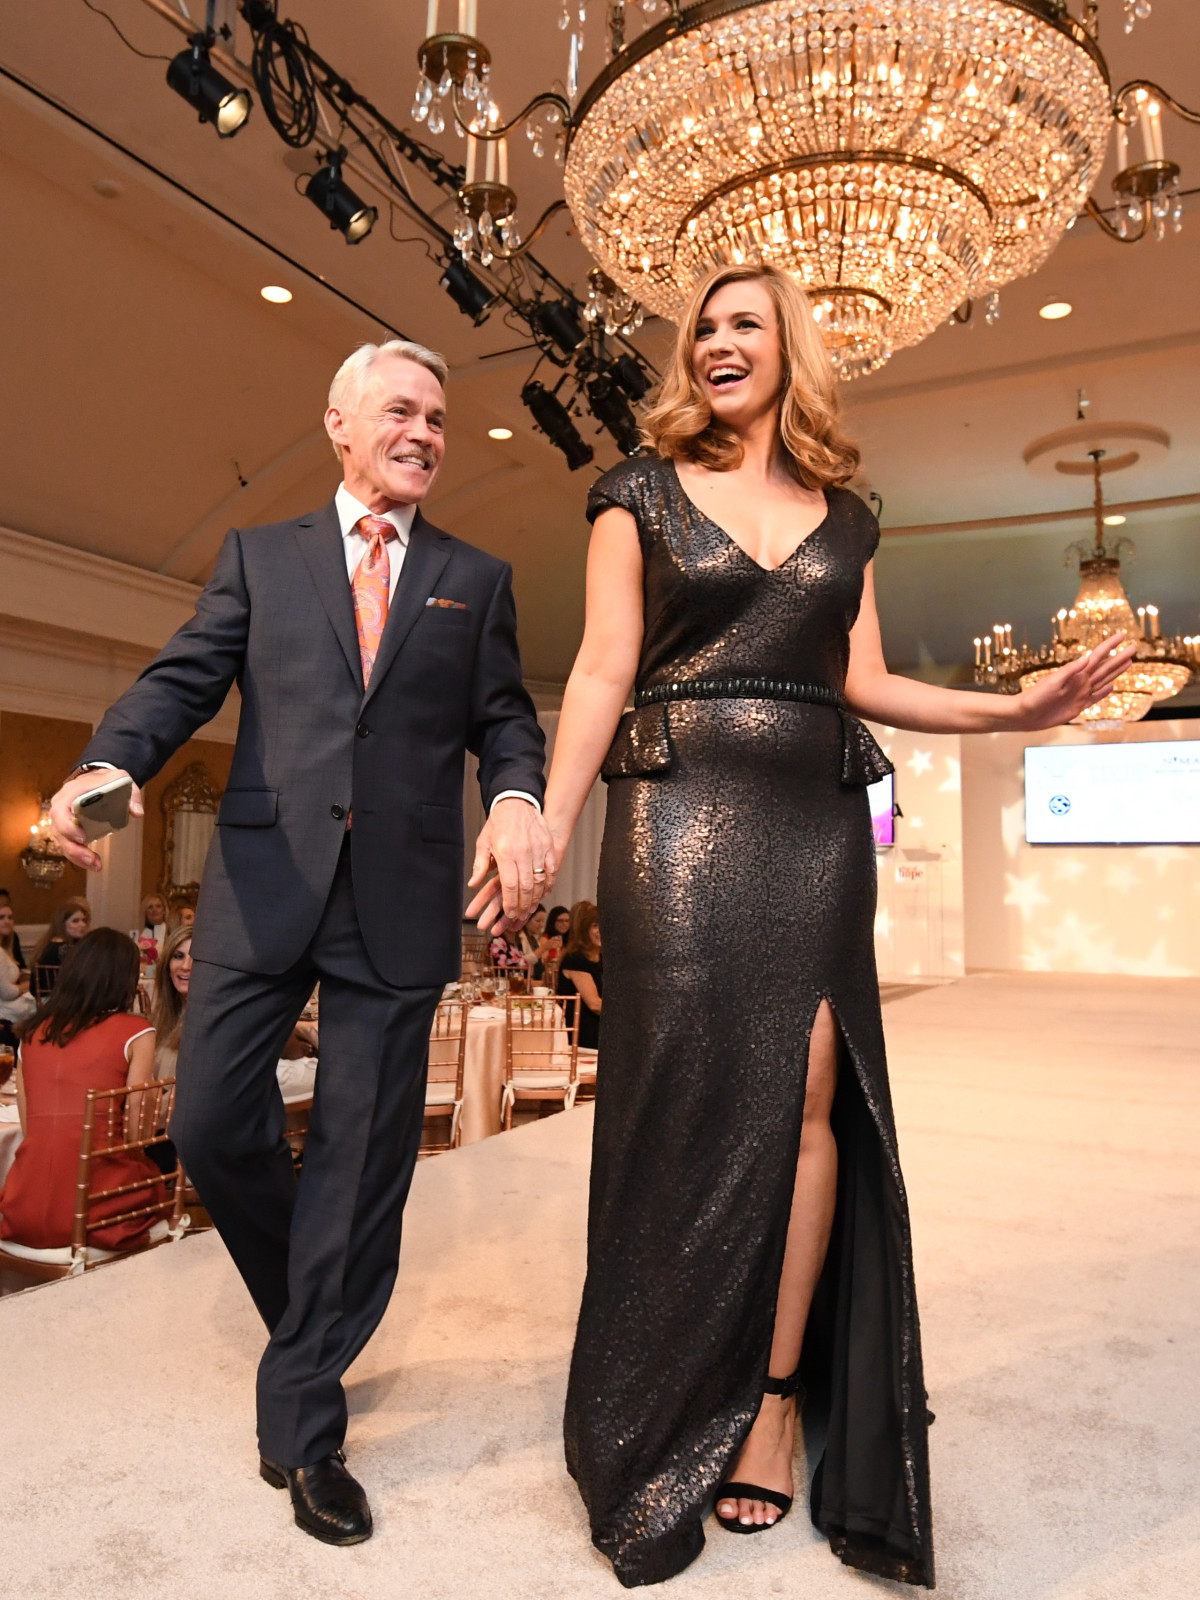 Dominique Sachse and news stars rule catwalk at Star of Hope